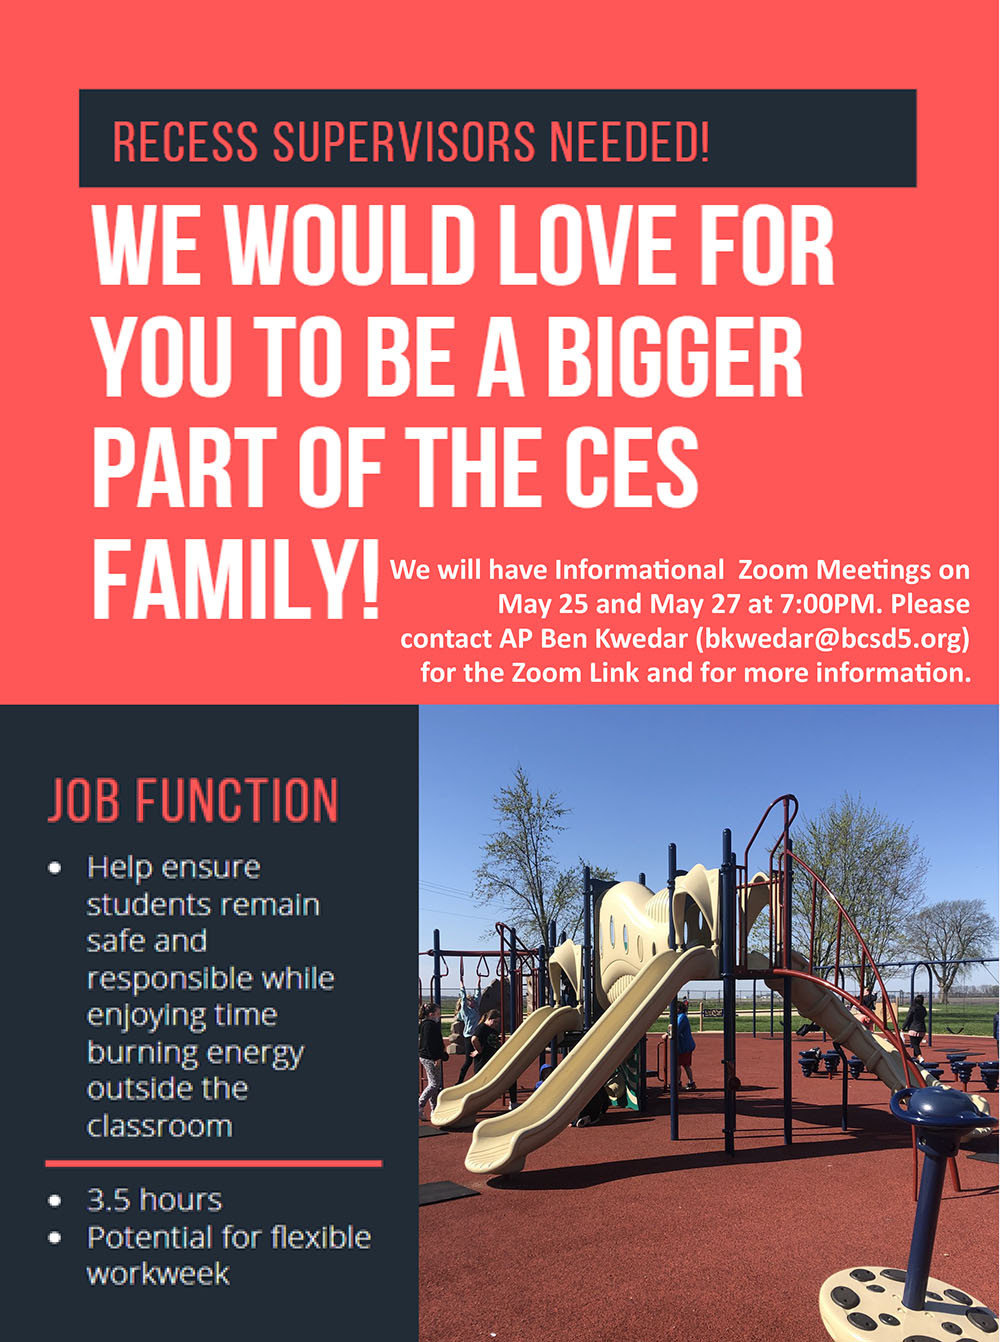 CES is looking for Recess Supervisors flyer